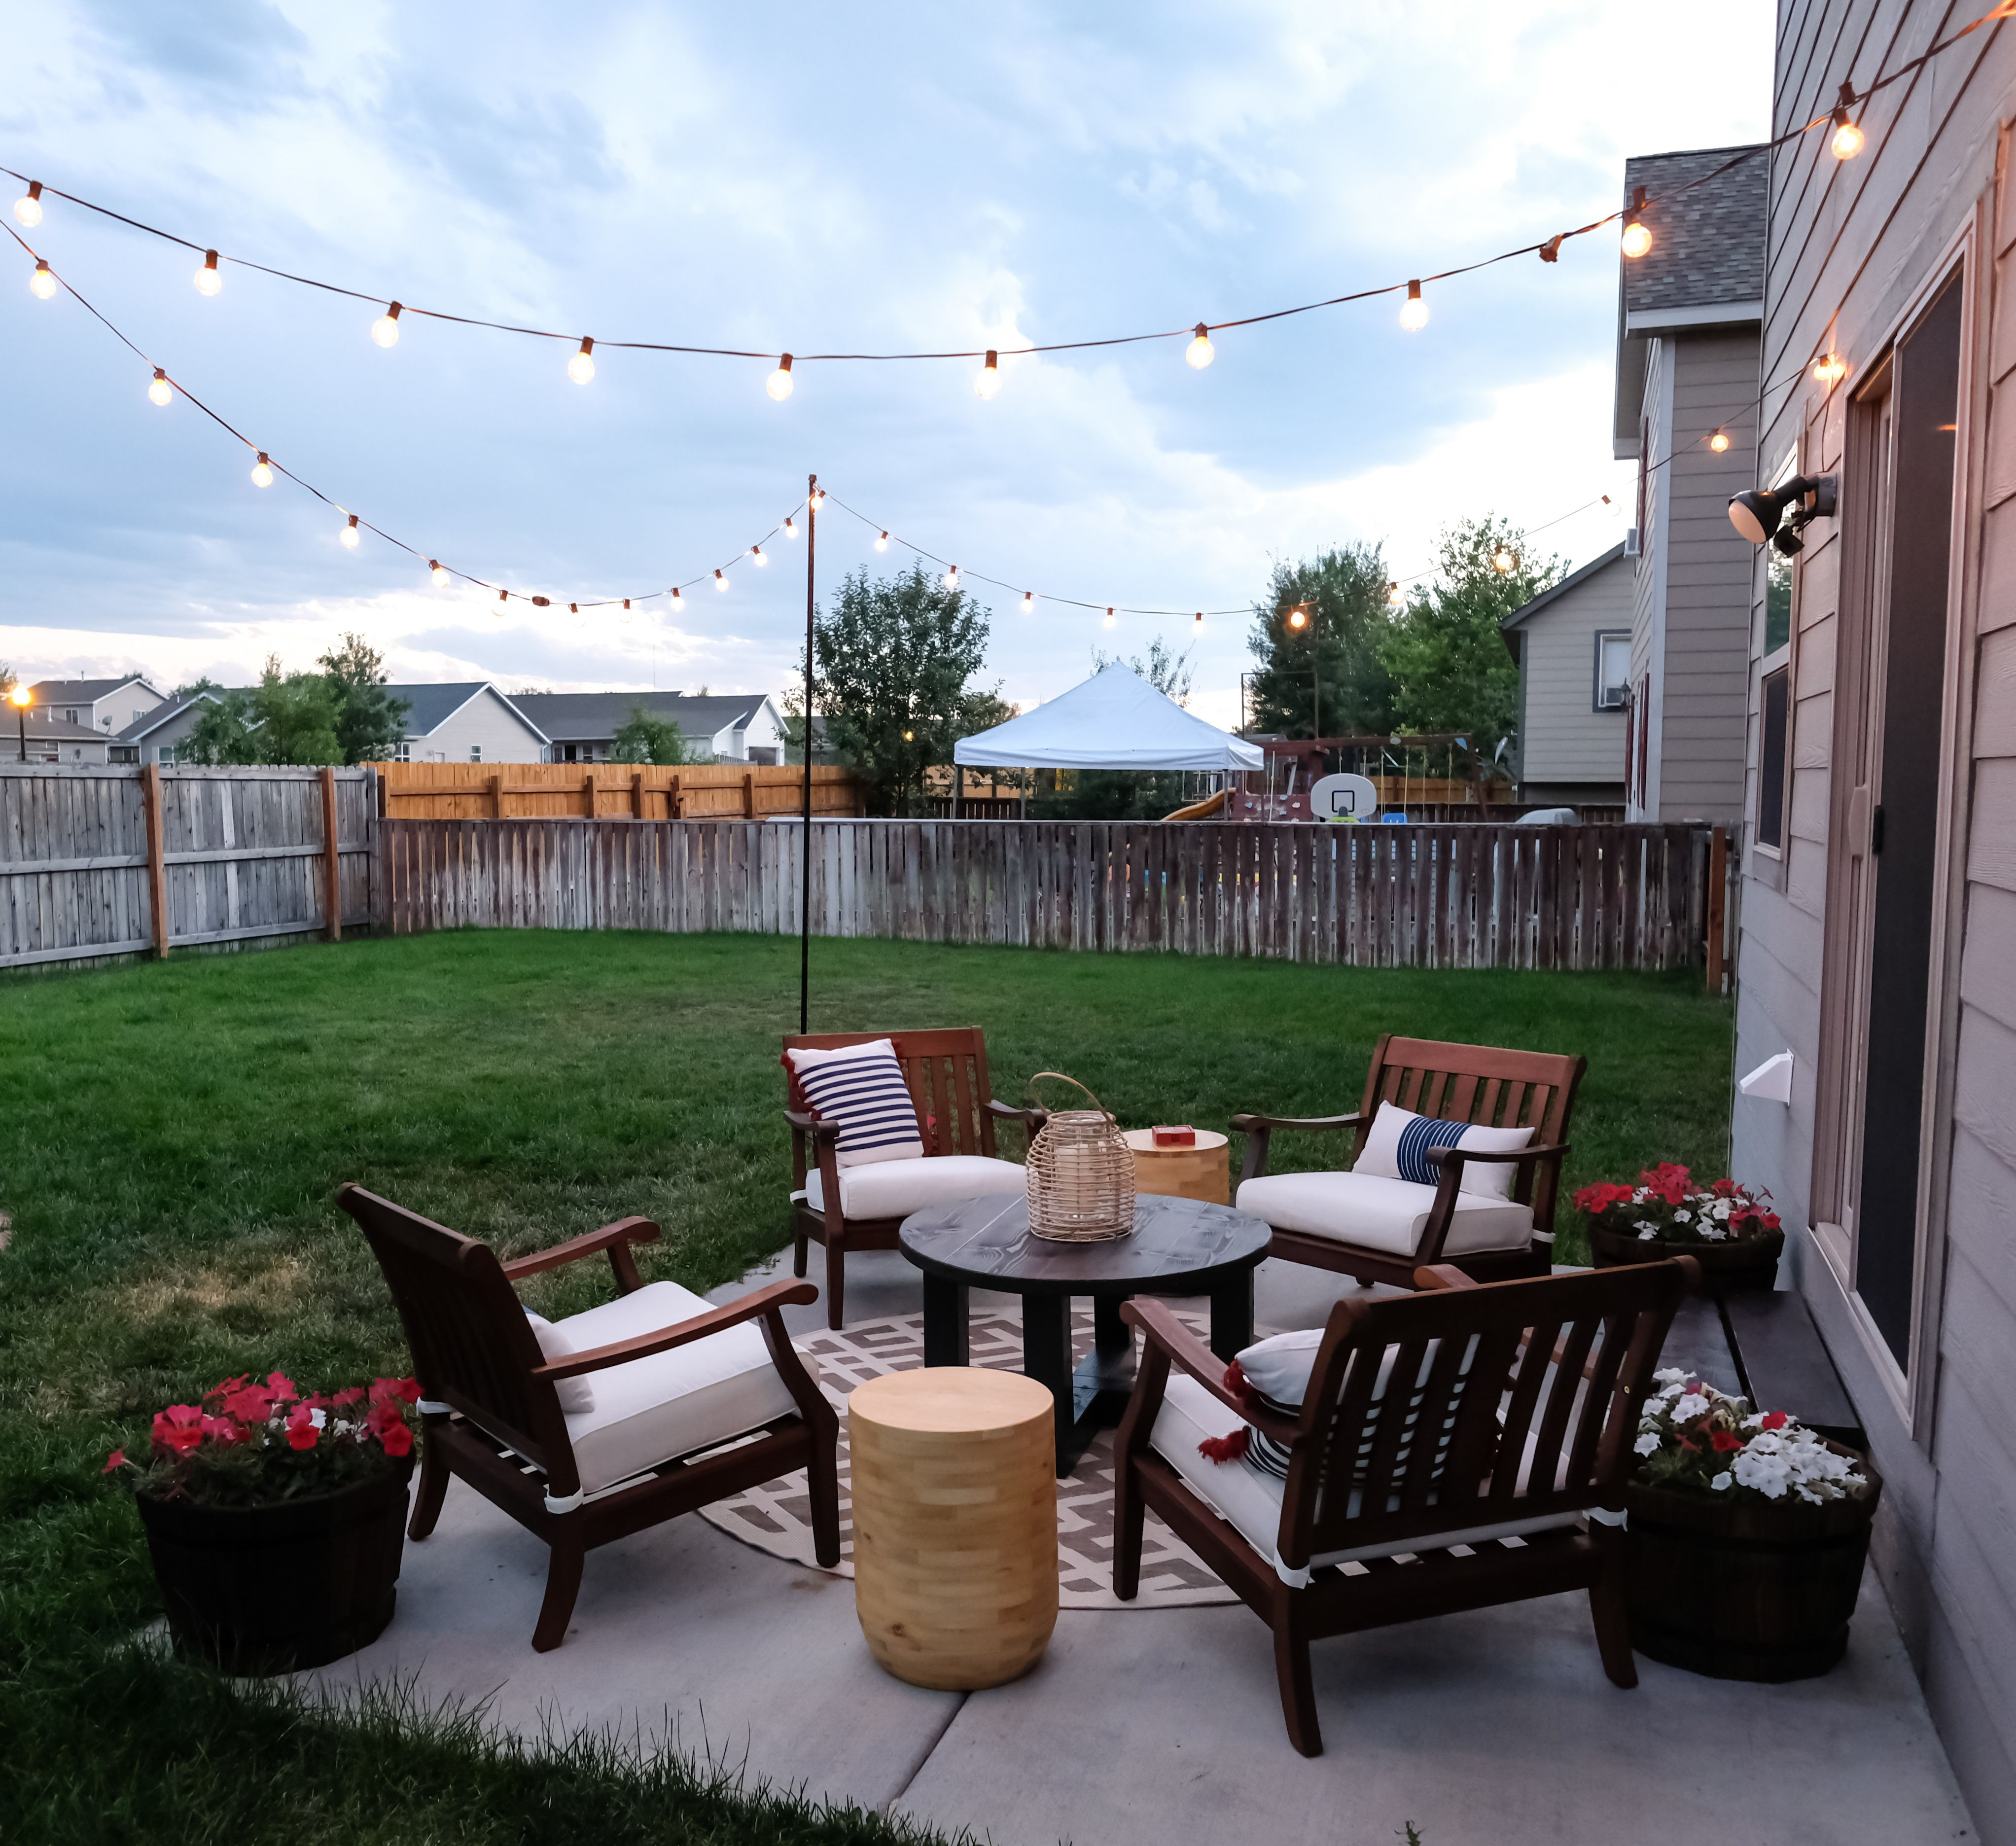 Patio Makeover On A Budget How It Looks After Is Amazing Patio Makeover Small Patio Design Small Outdoor Patios